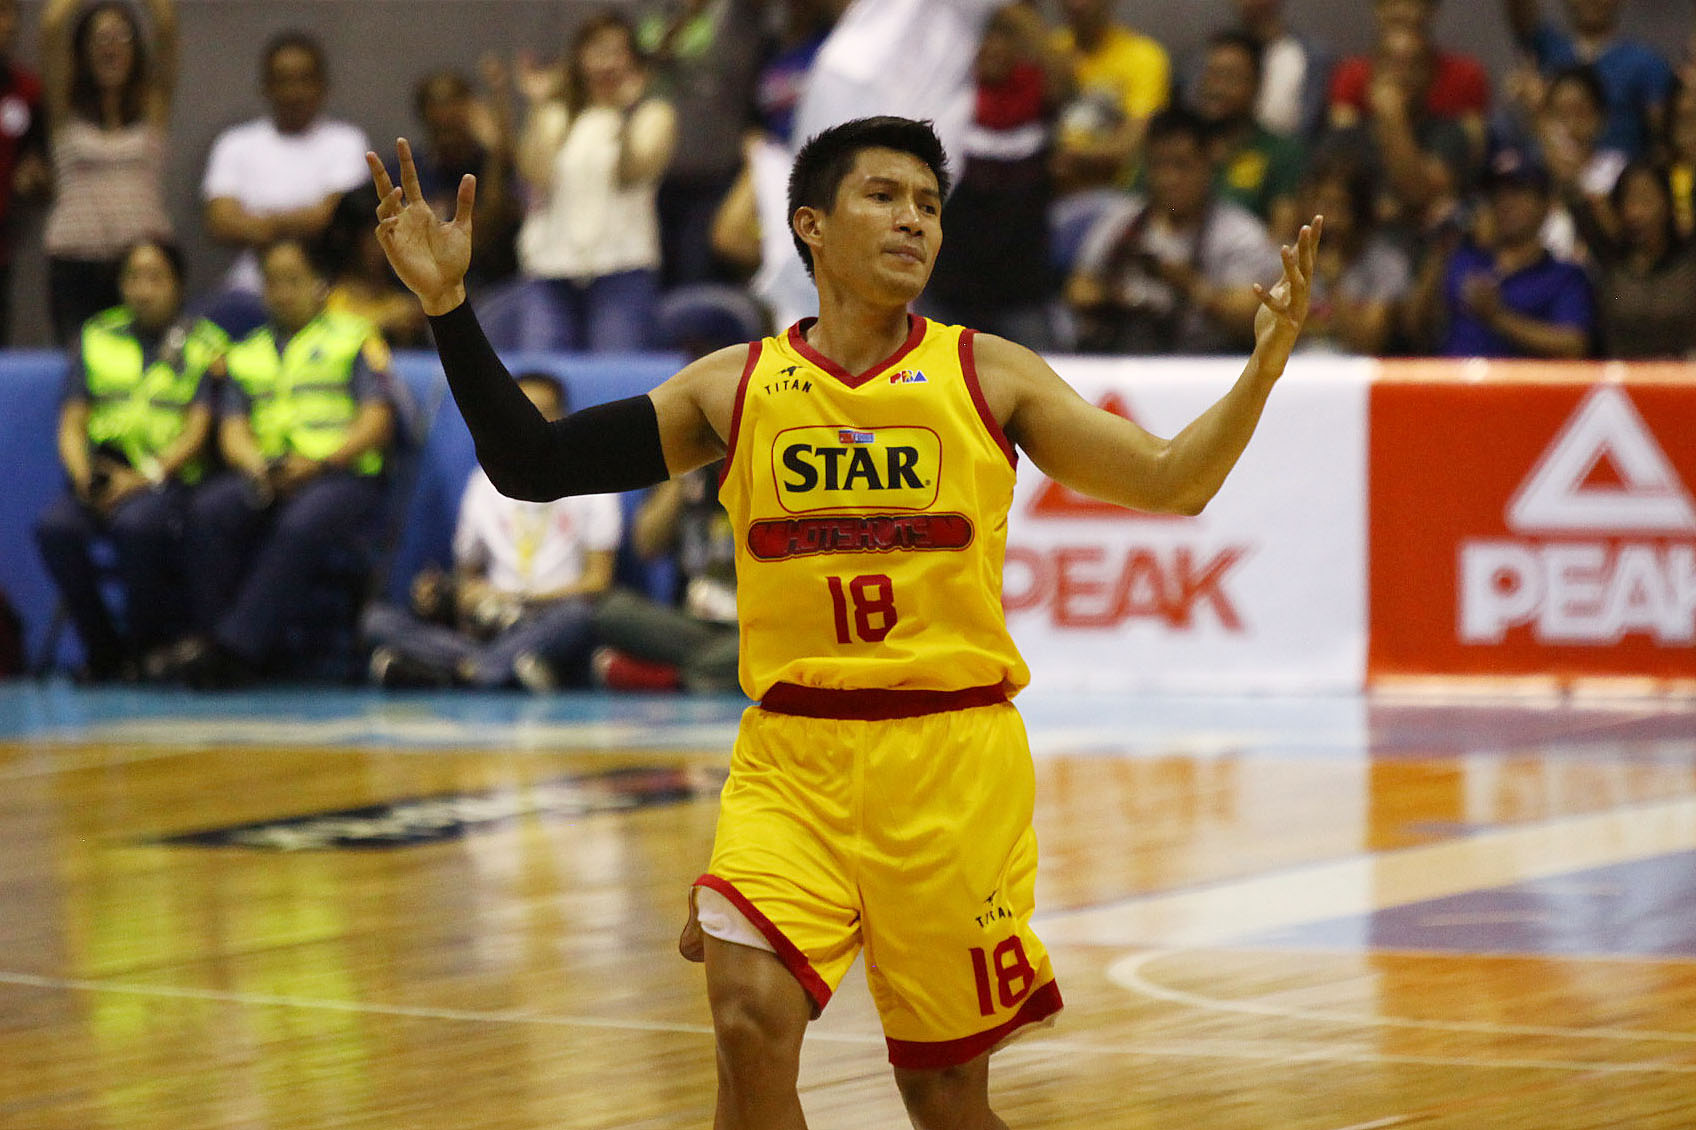 BIG GAME. James Yap looked like his old, MVP self in Star's win. Photo by Josh Albelda/Rappler